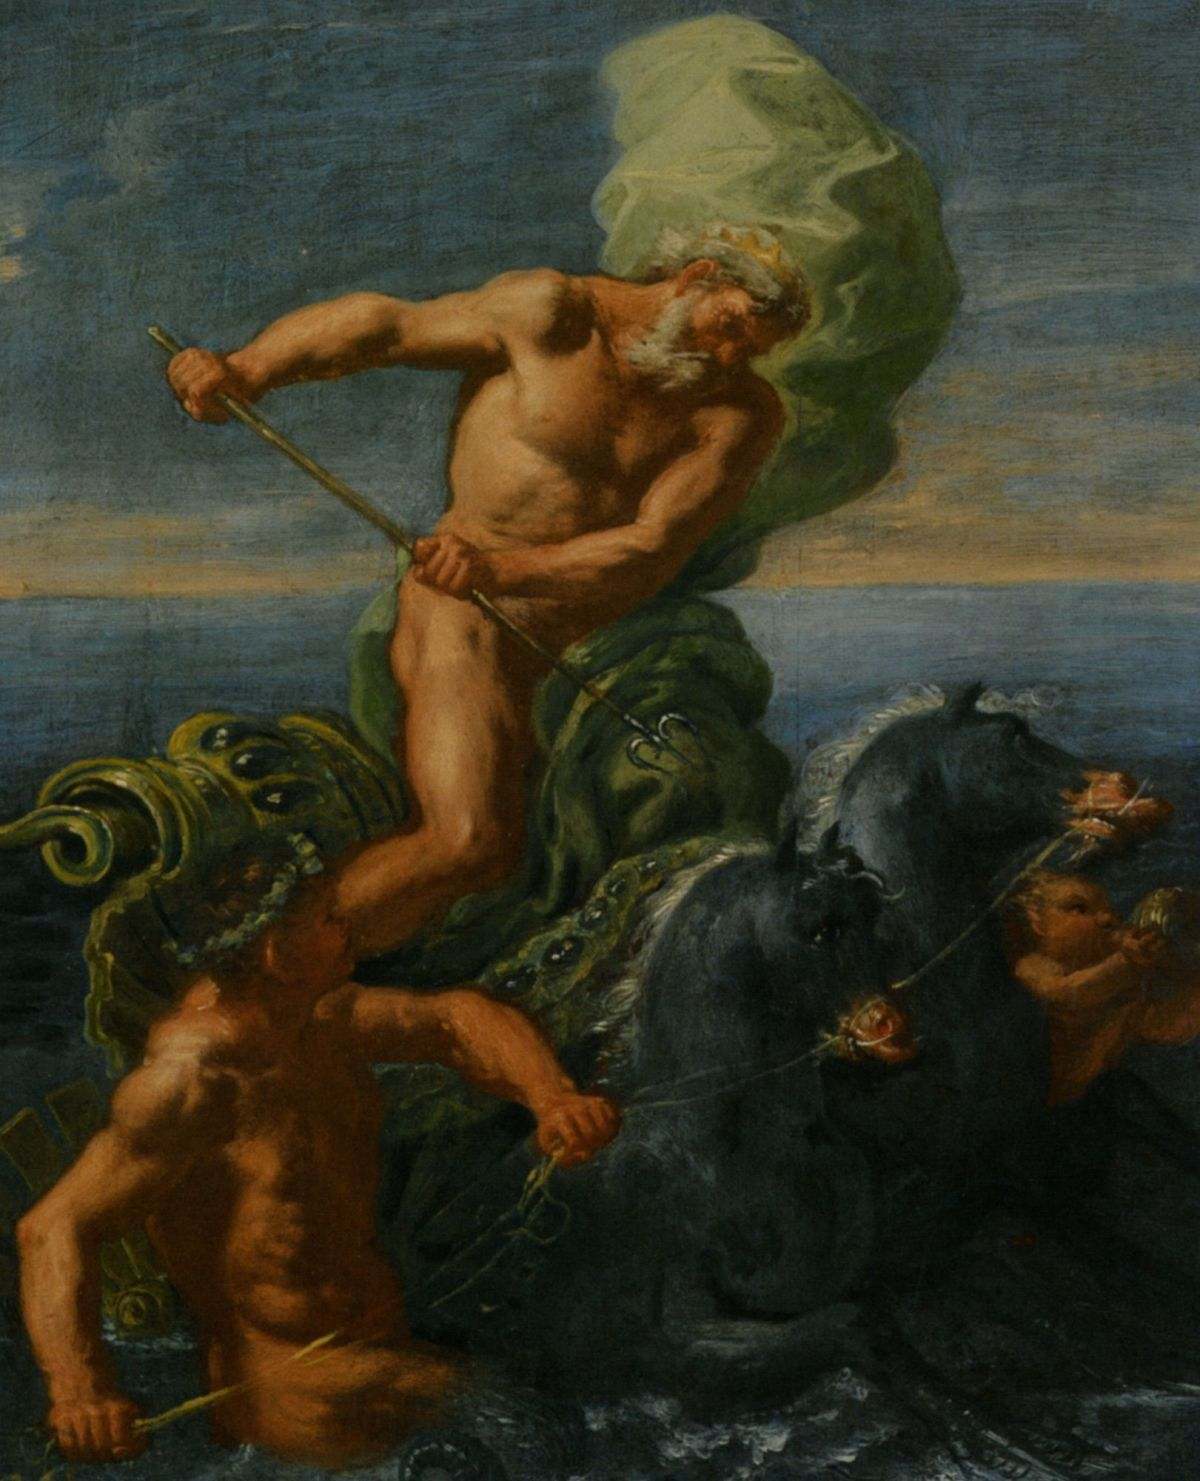 Neptune and his Chariot of Horses by Domenico Antonio Vaccaro